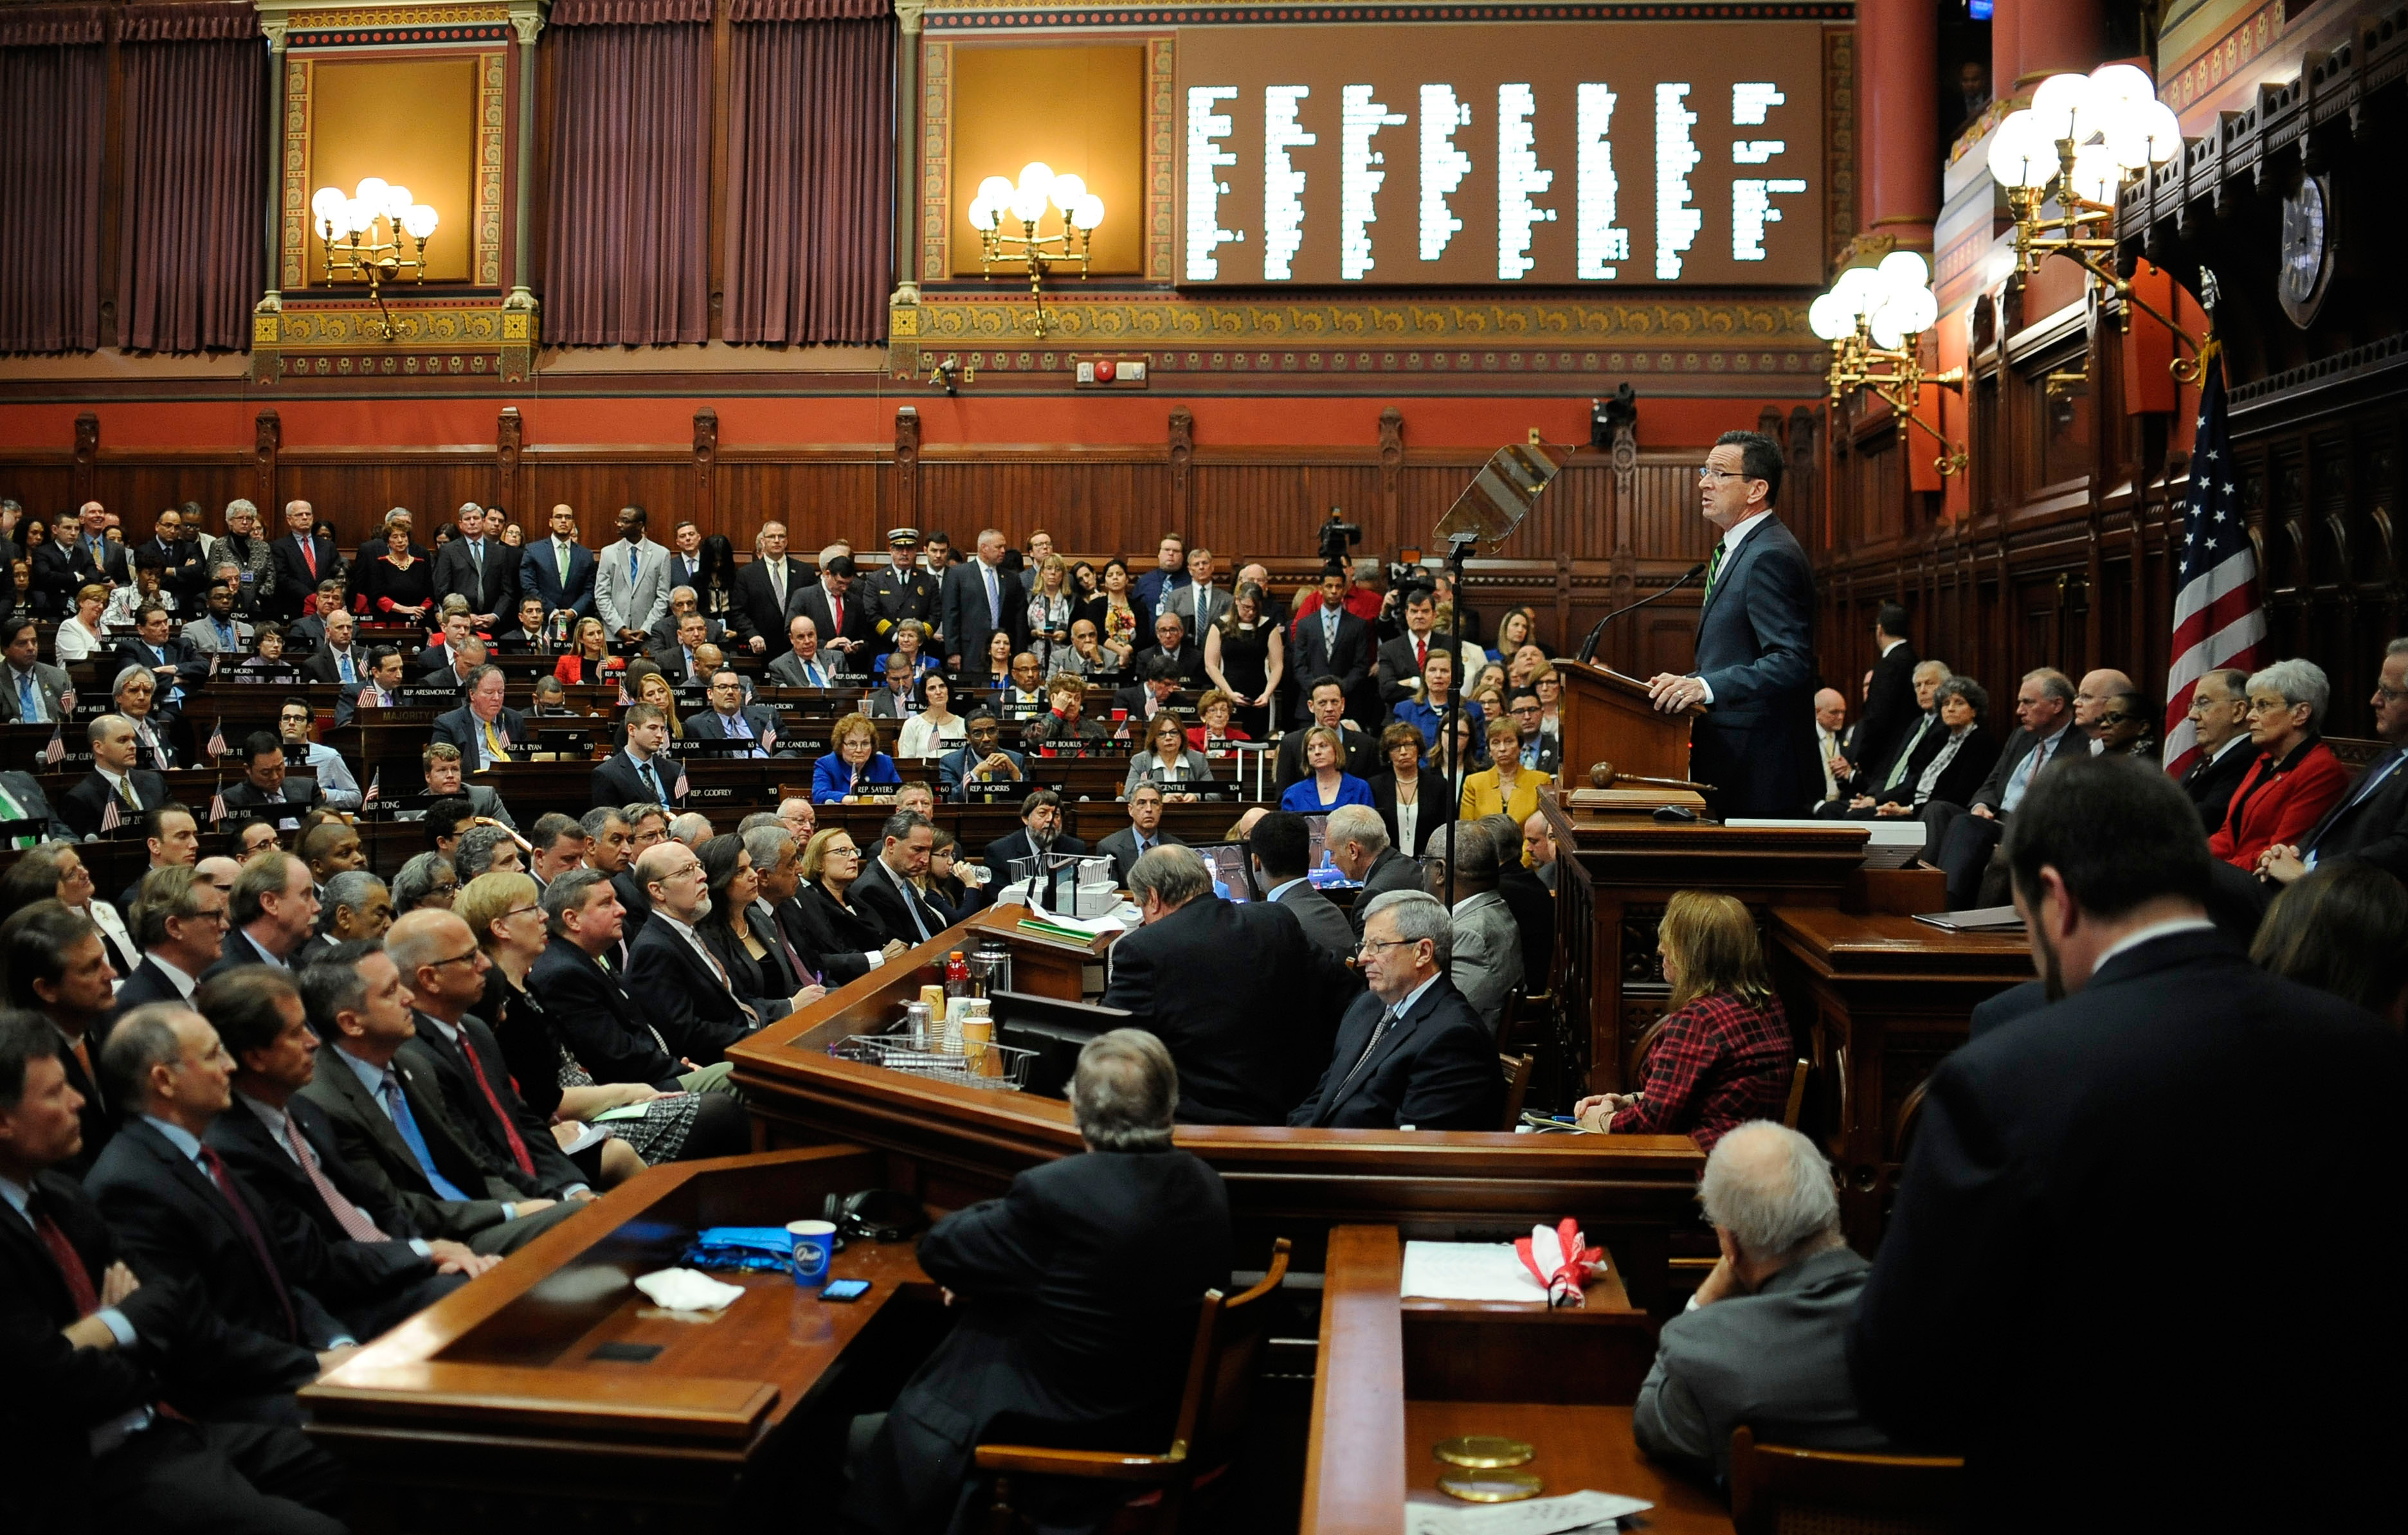 FILE PHOTO - Connecticut Gov. Dannel P. Malloy delivers his budget address to the senate and house inside the Hall of the House at the State Capitol, Wednesday, Feb. 3, 2016, in Hartford, Conn. (AP Photo/Jessica Hill)